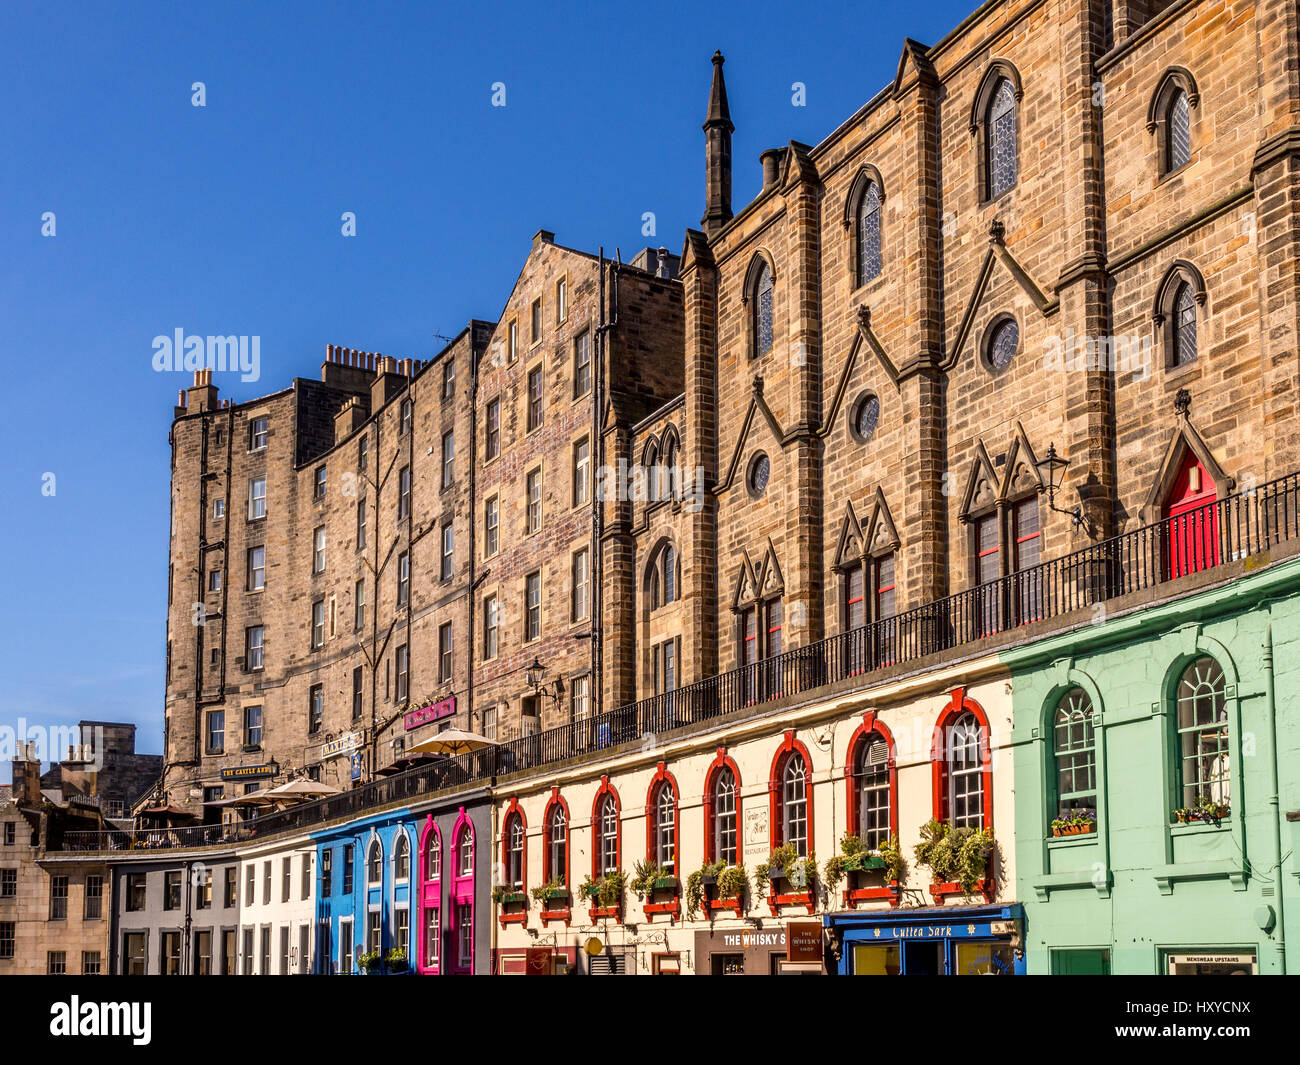 Colourful shop fronts in Victoria Street, part of the old town, Edinburgh, Scotland. - Stock Image